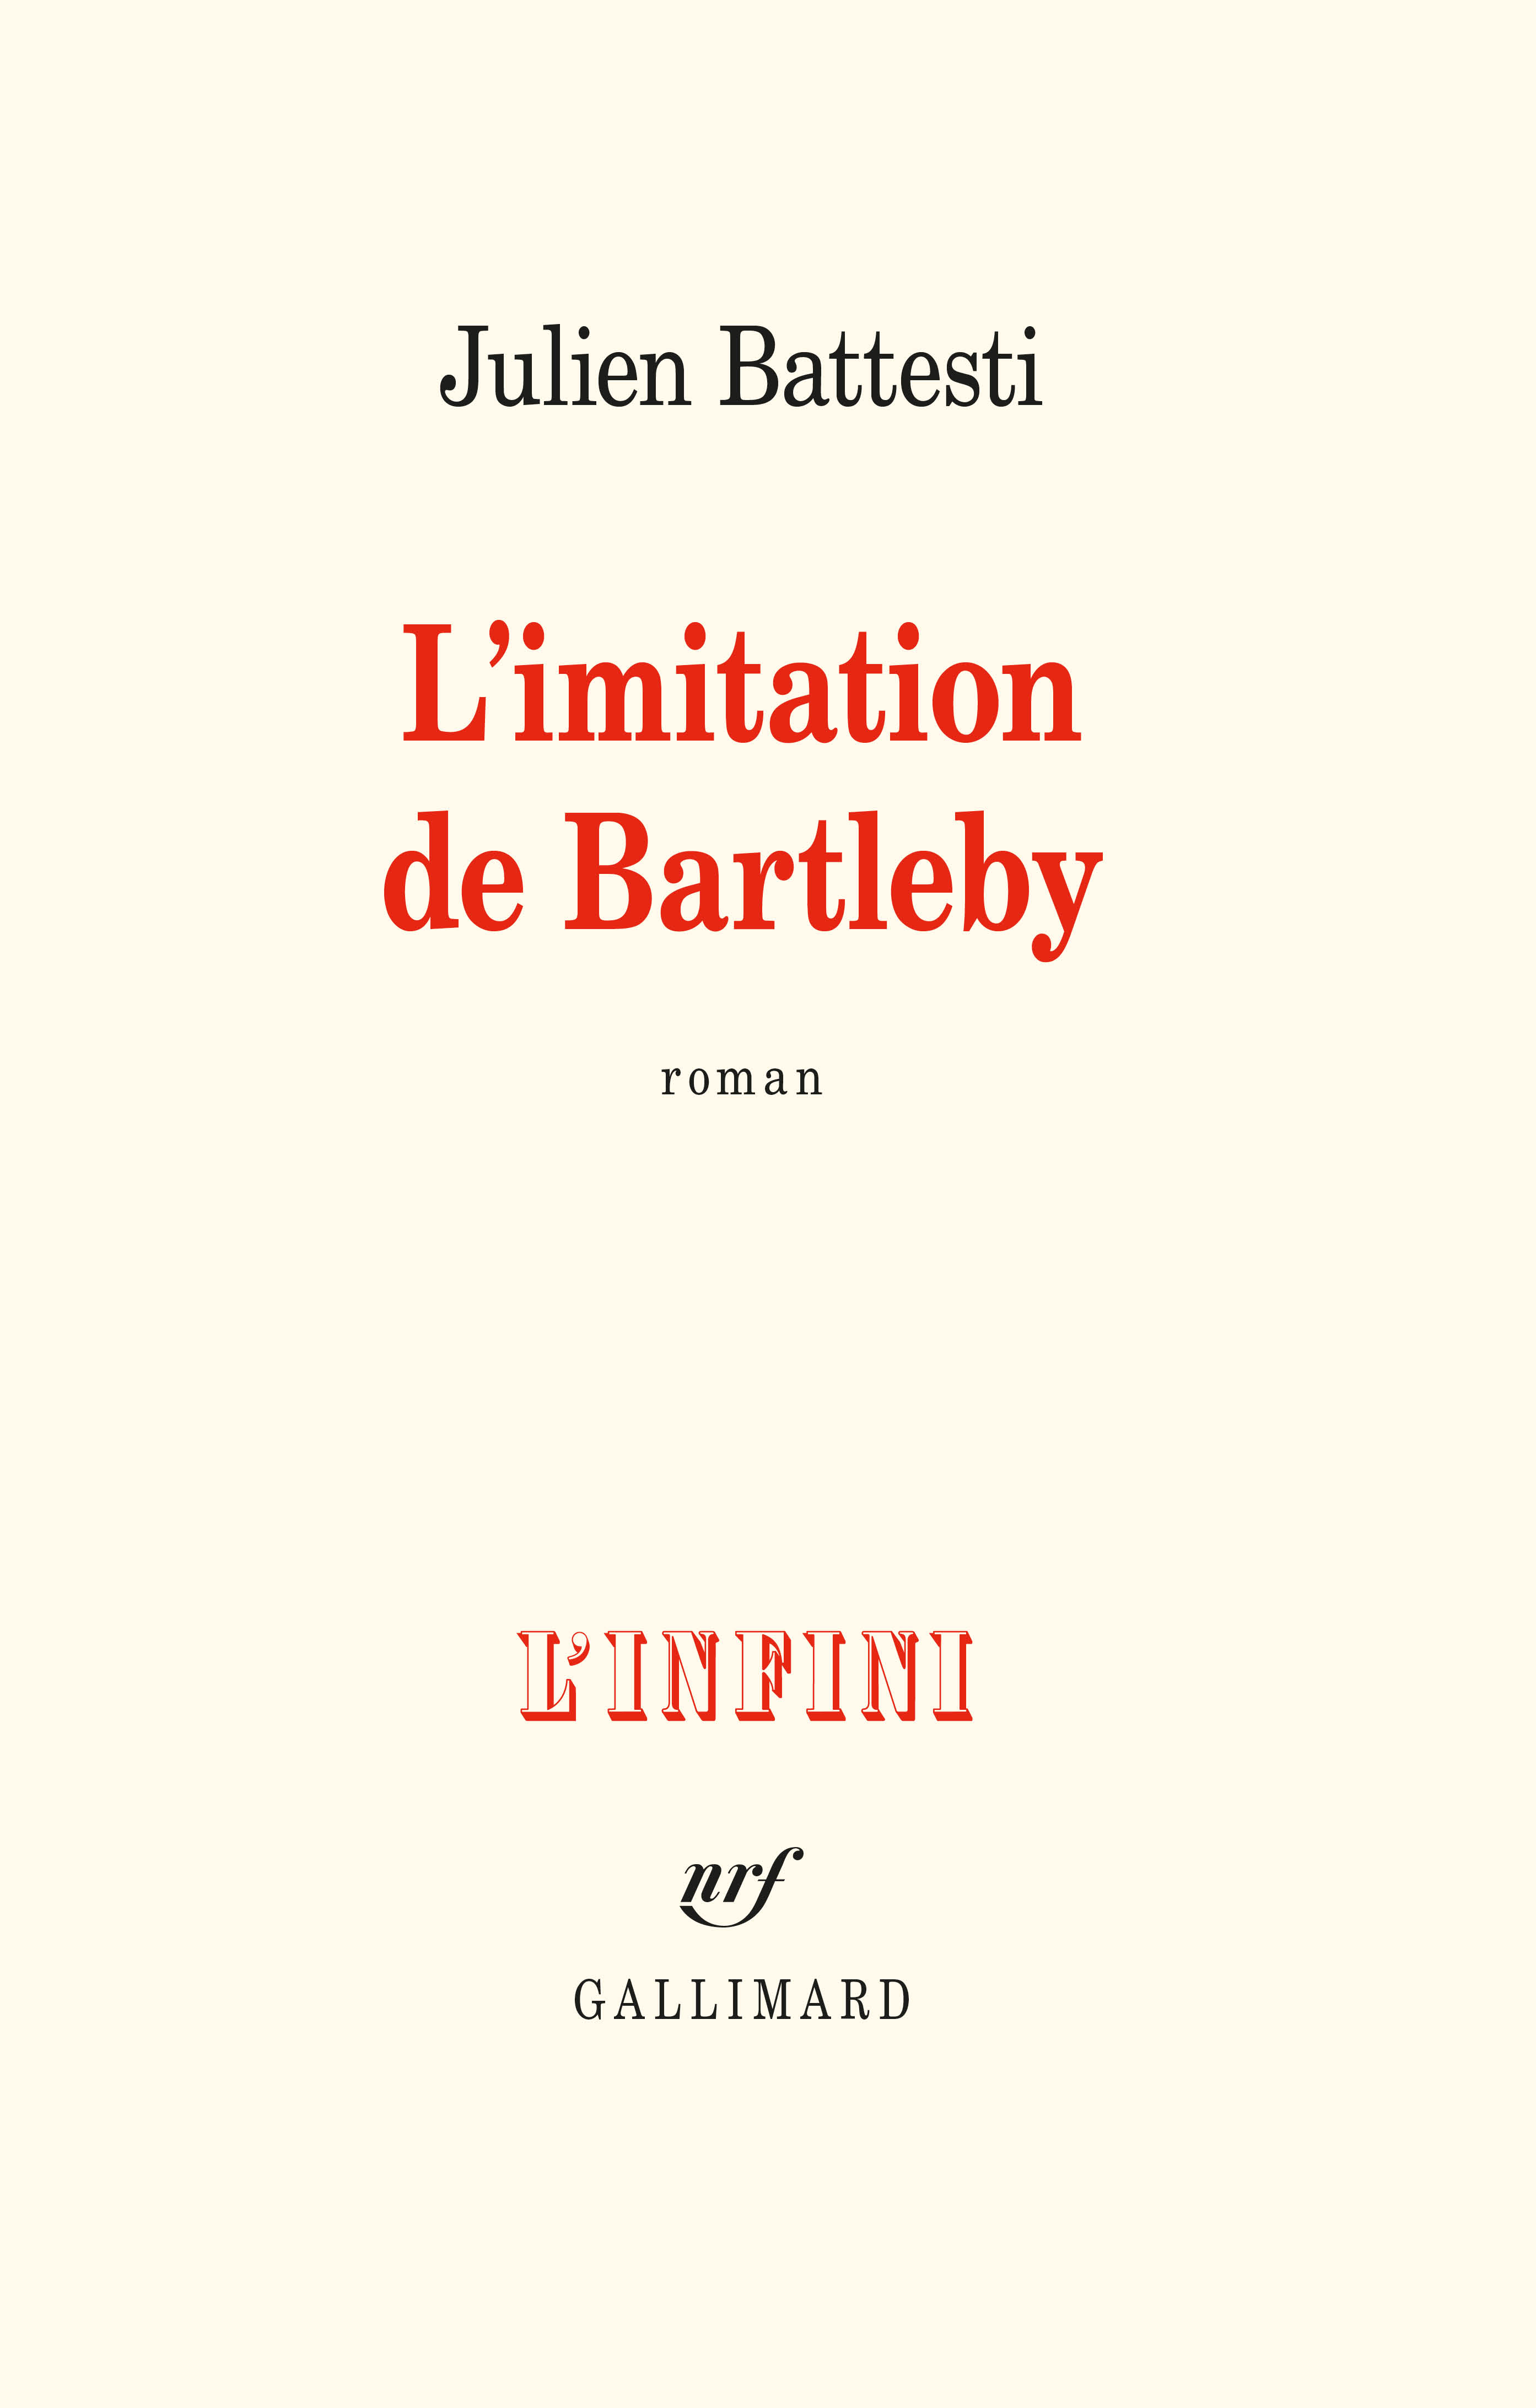 J. Battesti, L'imitation de Bartleby